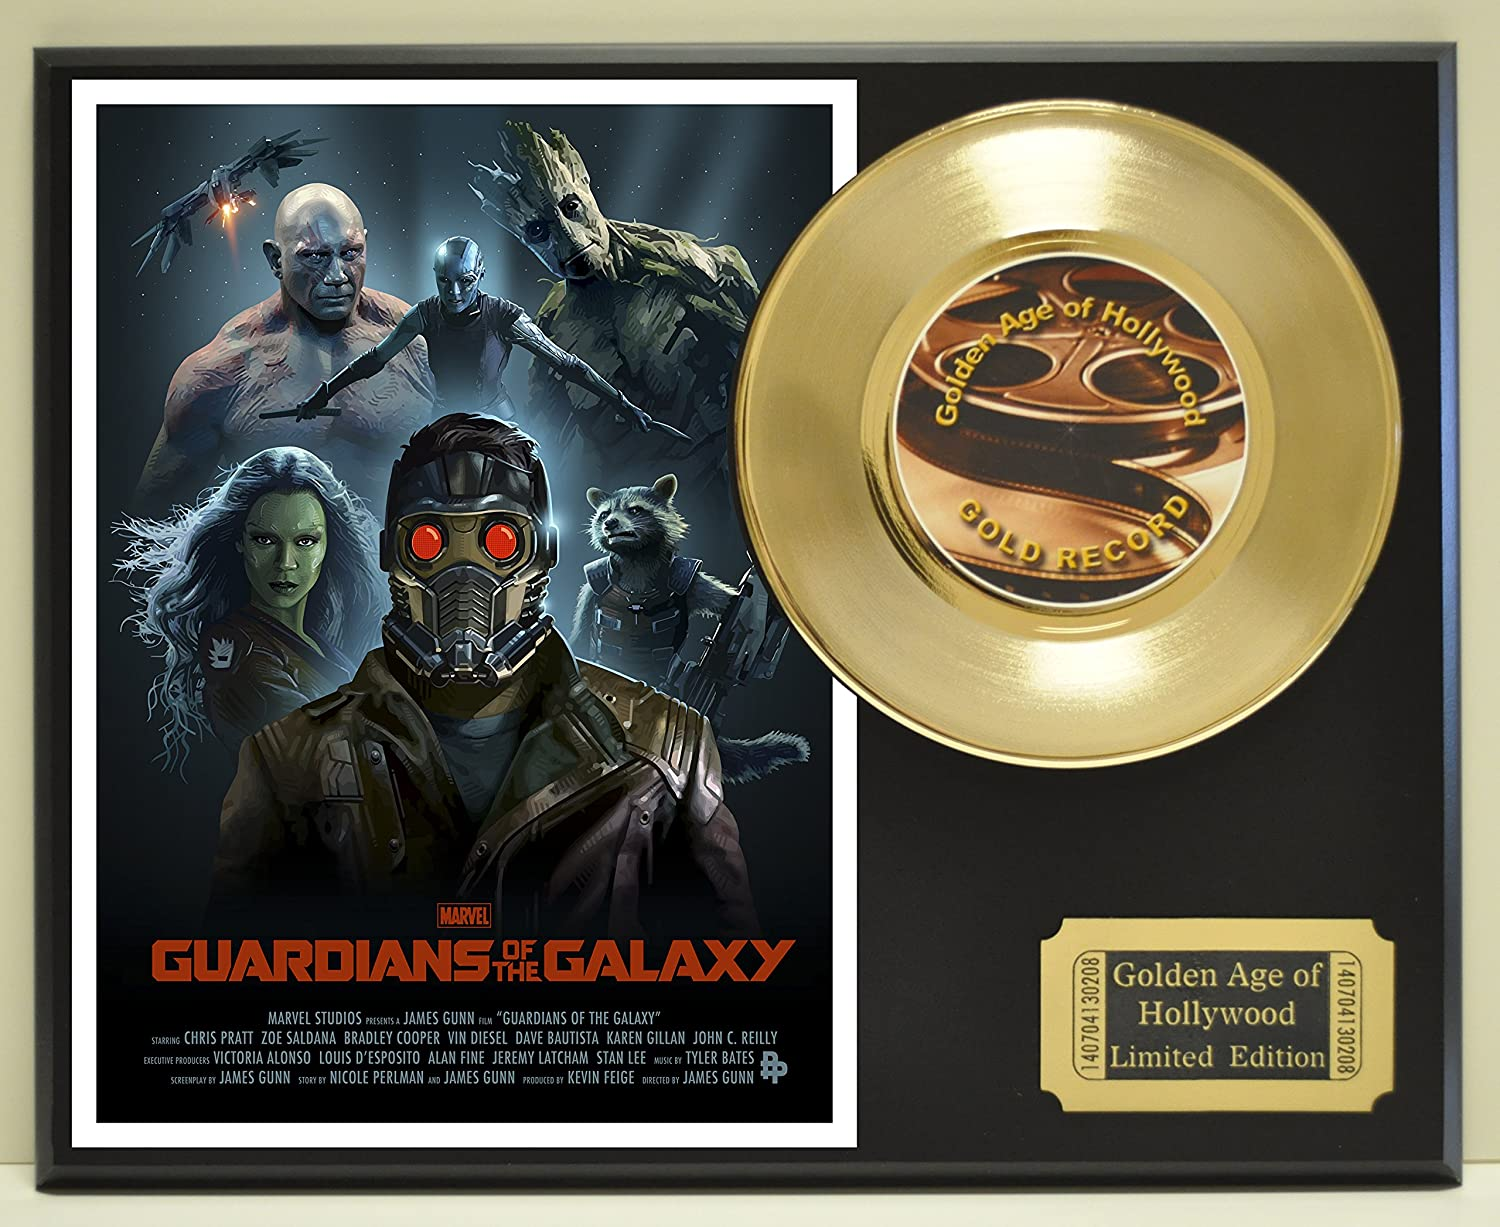 Guardians of the Galaxy Limited Edition Gold 45 Record Display. Only 500 made. Limited quanities. FREE US SHIPPING by Classic Rock Collectibles